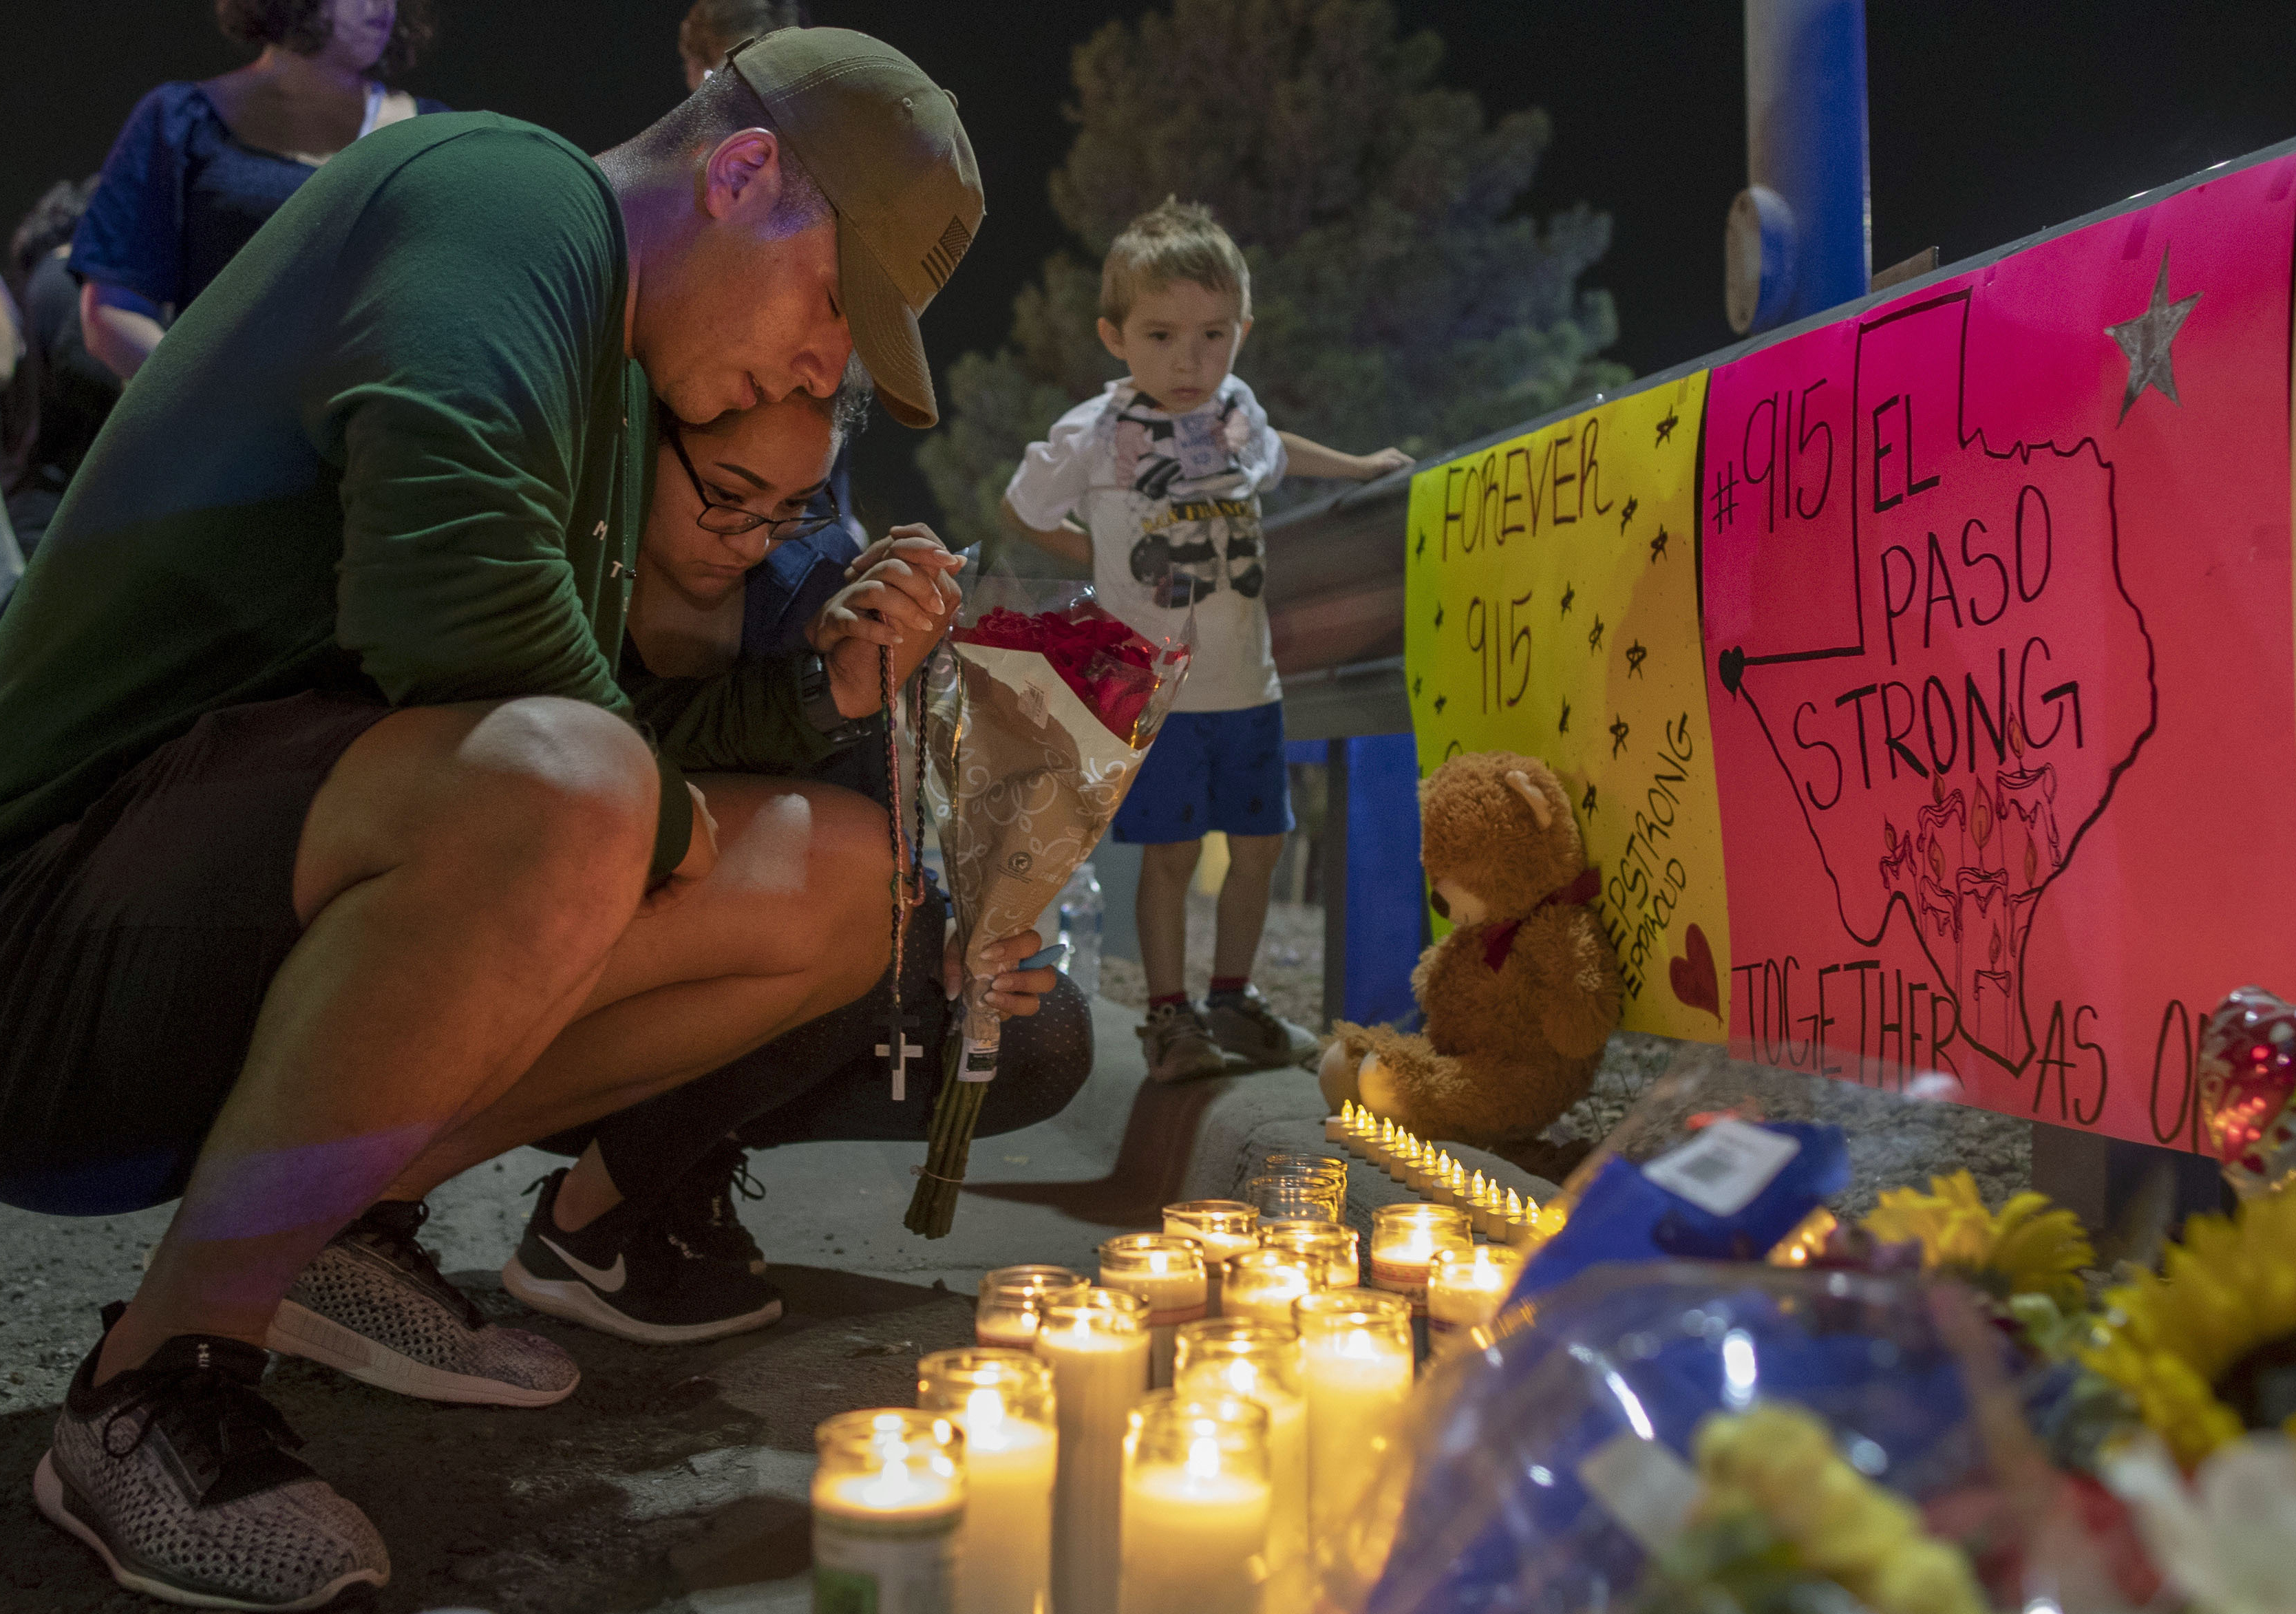 El Paso shooting victims candles tribute vigil